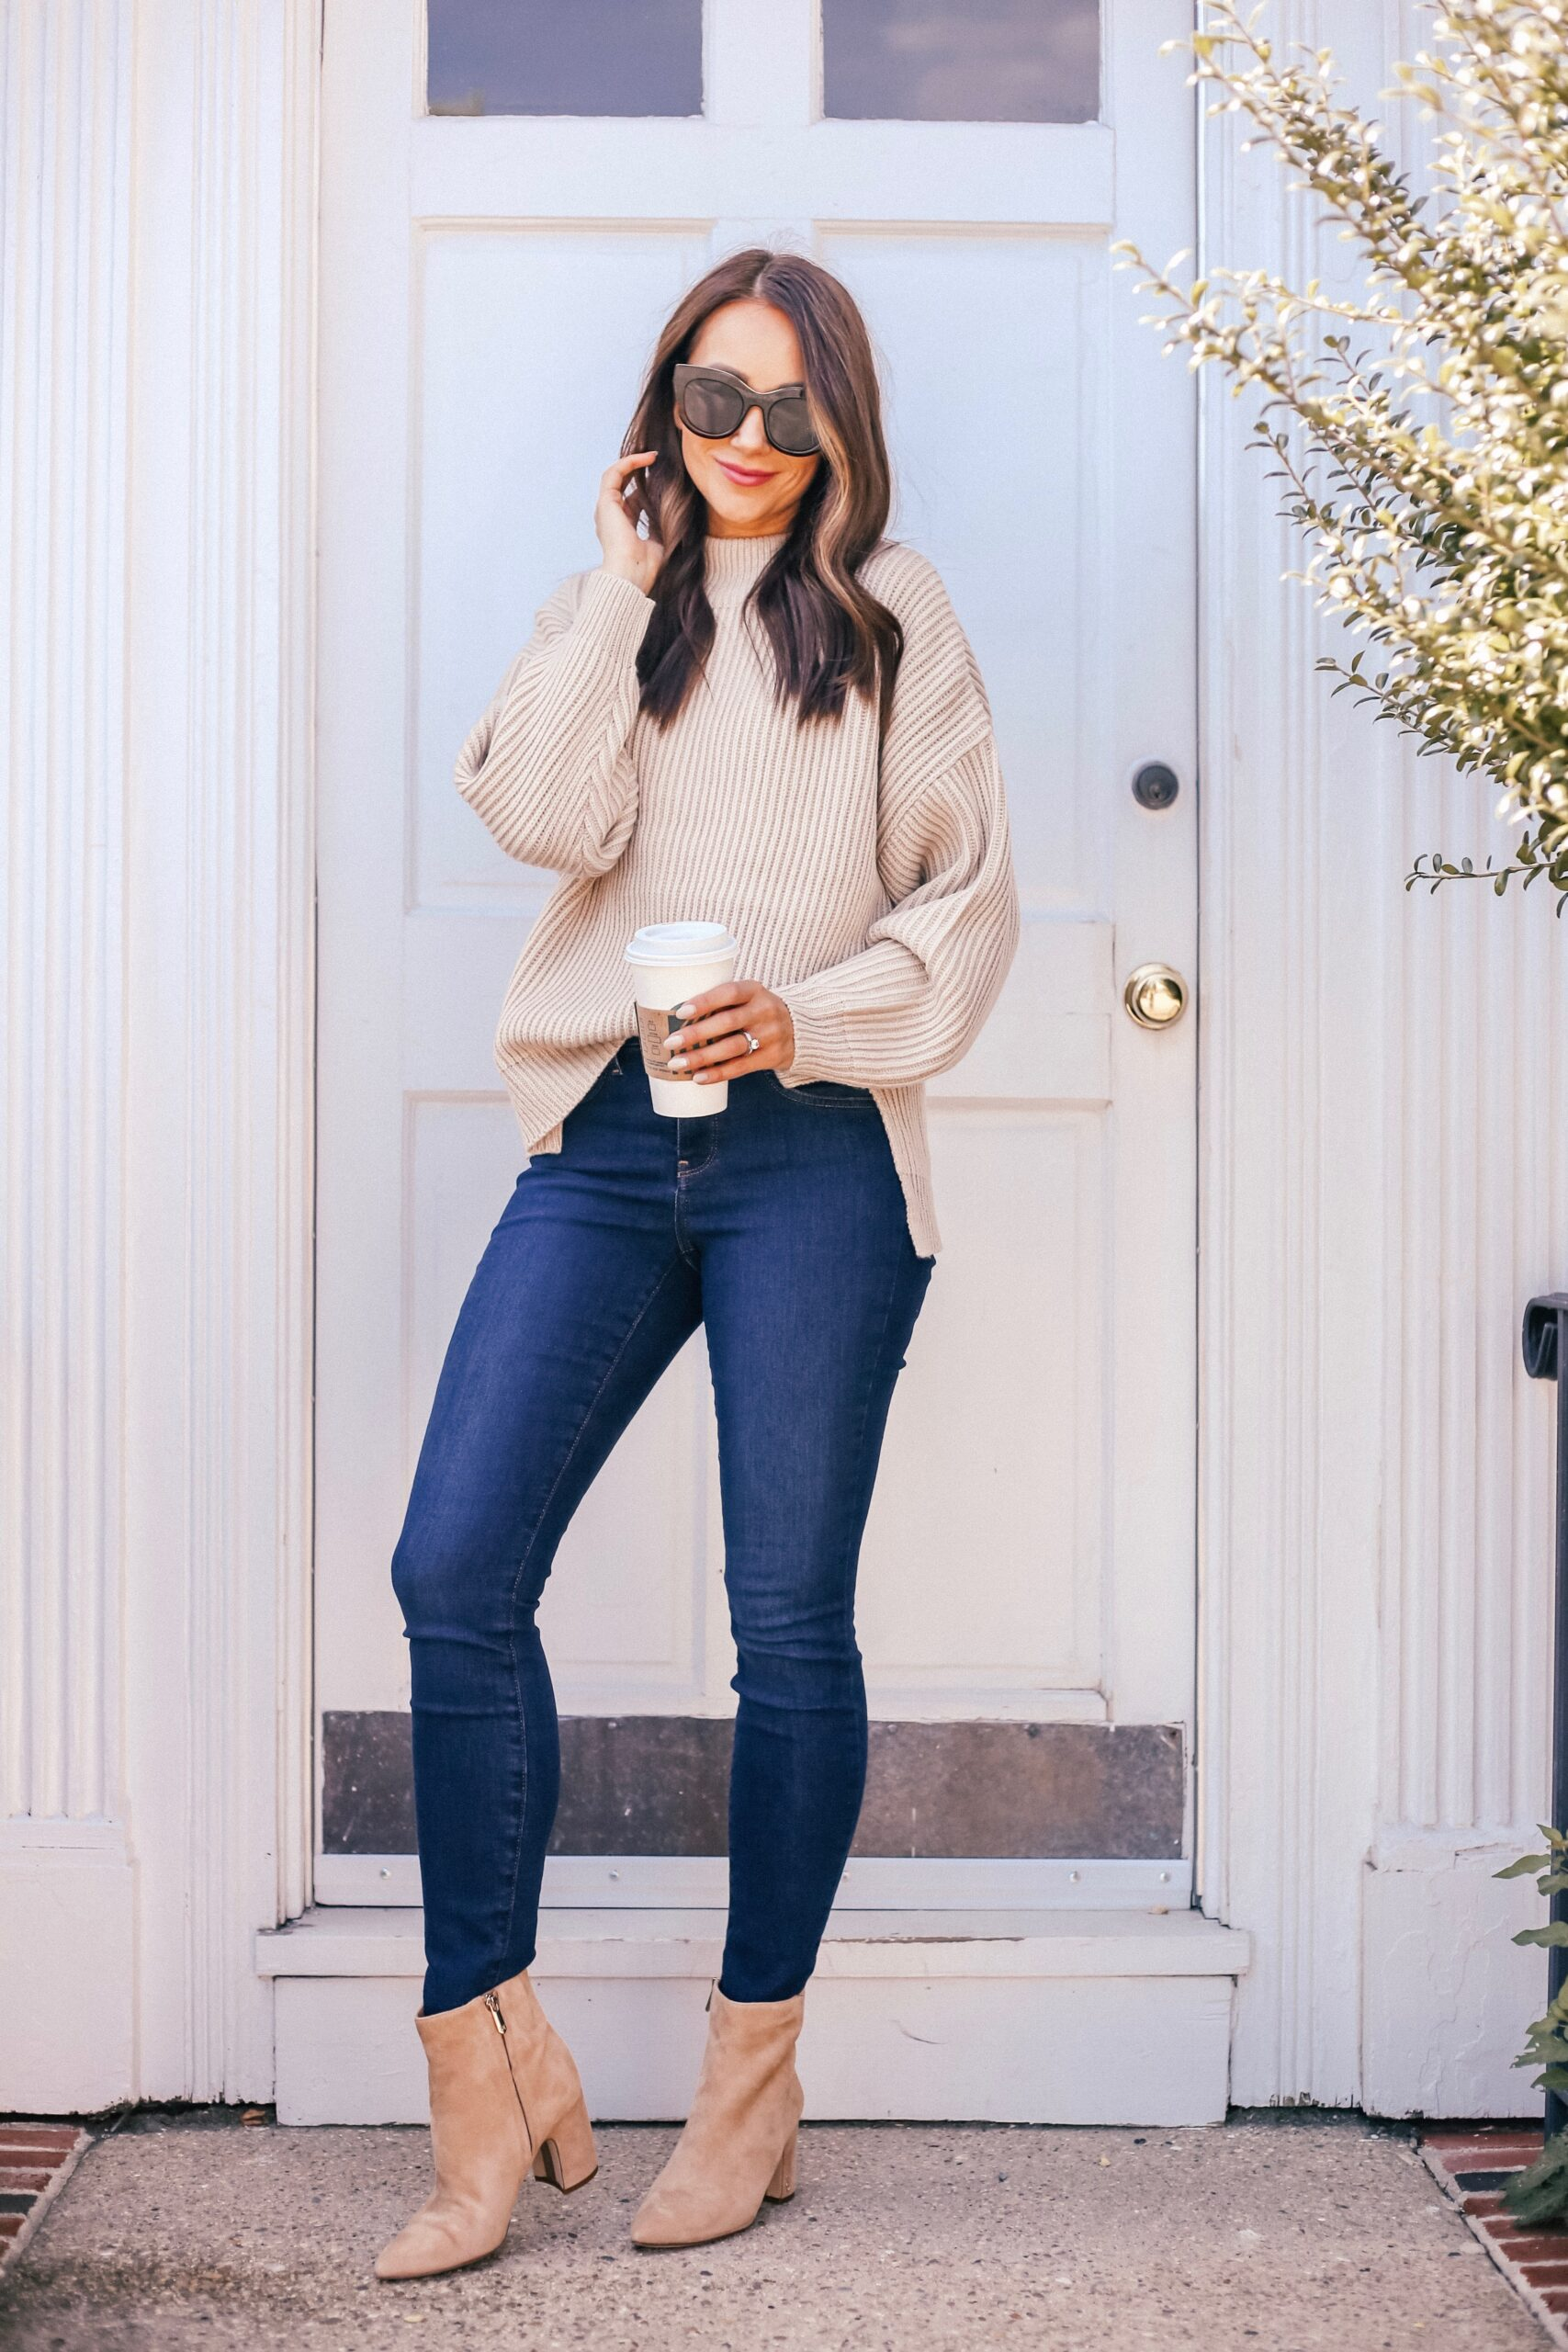 cowl neck sweater, jeans, booties